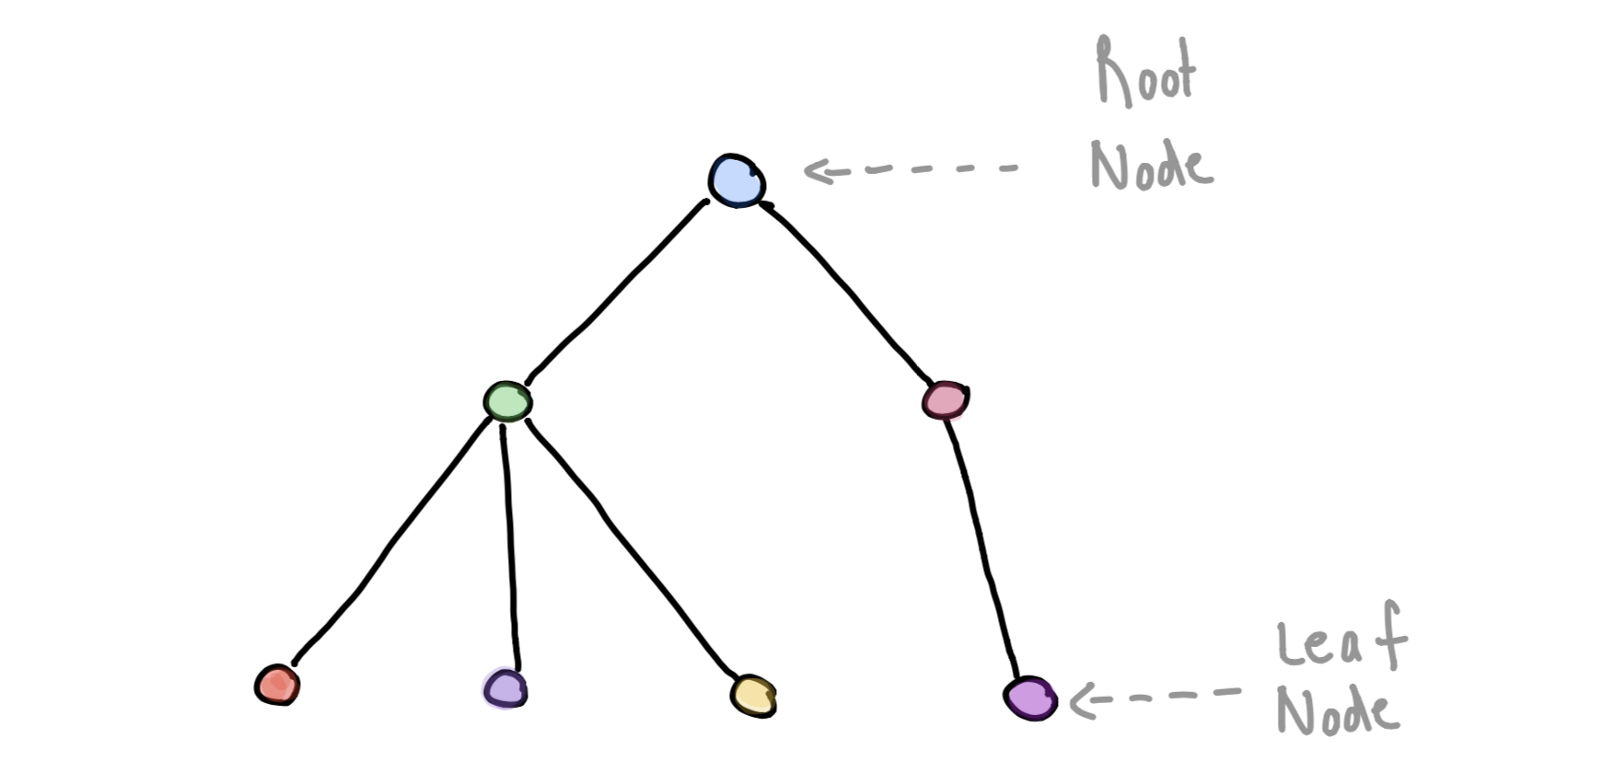 A mathematical tree consists of single root node and multiple other nodes